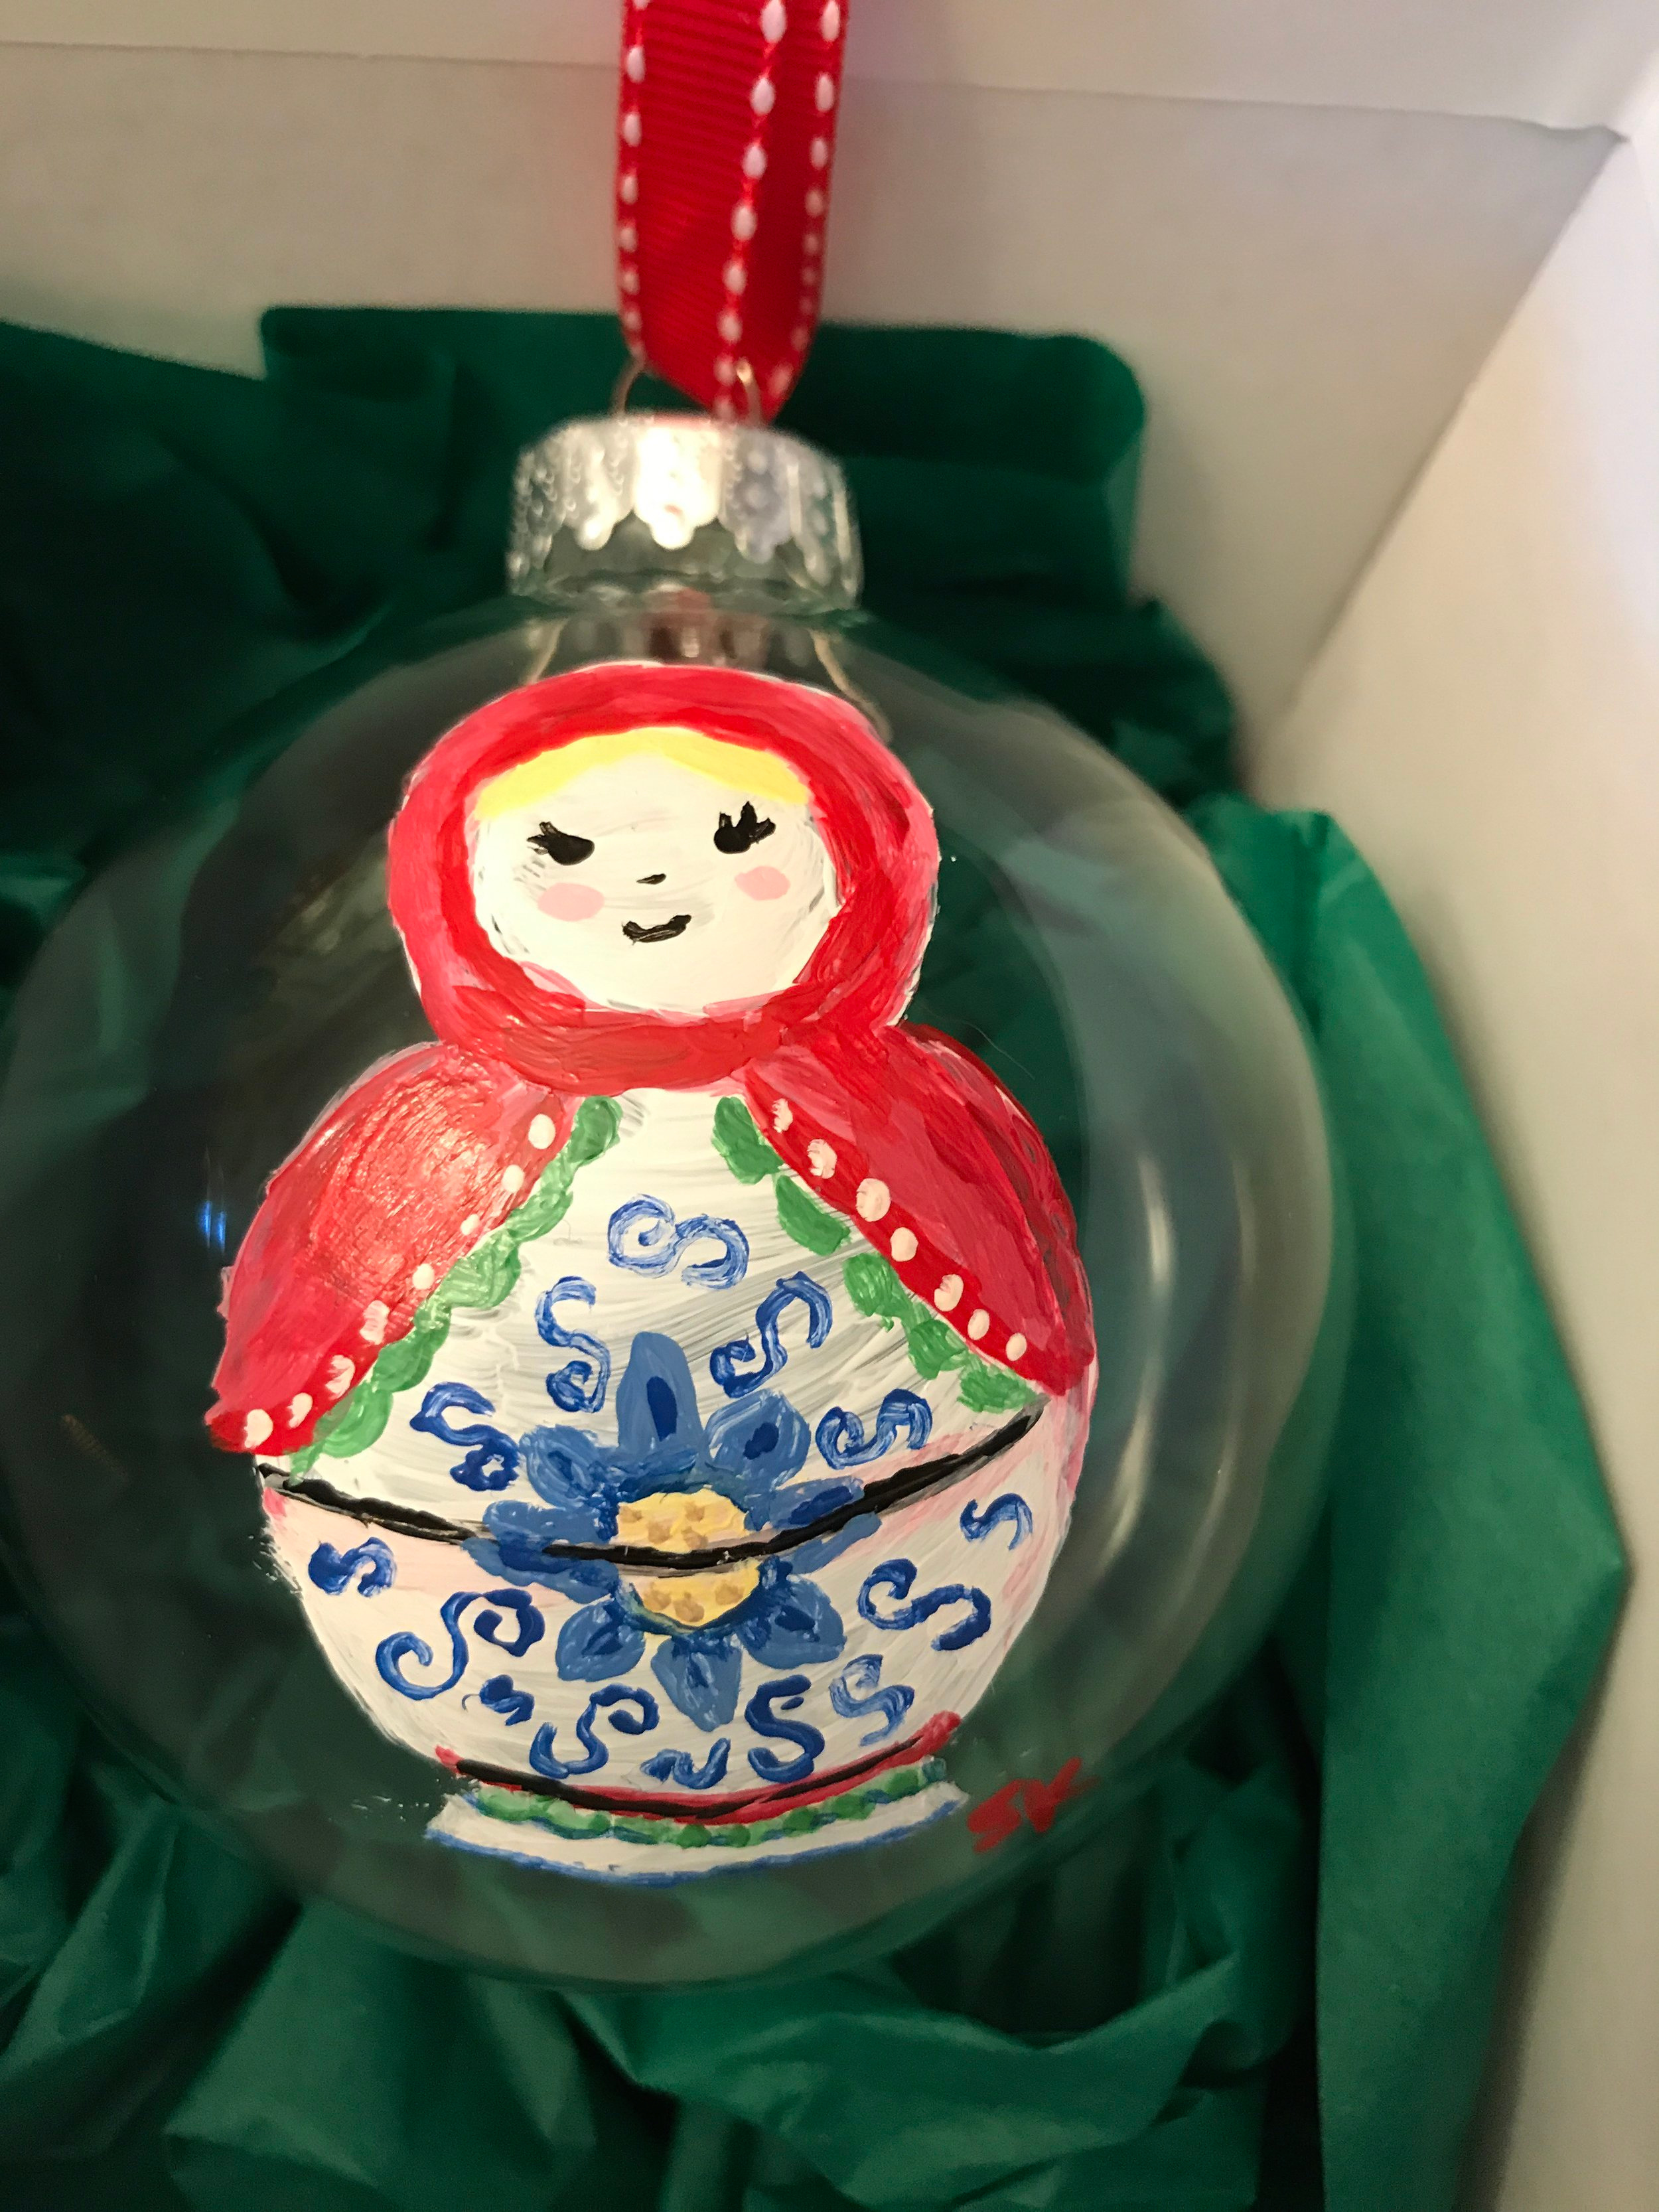 Large Glass Ornaments - Want something you don't see? Contact us and we will create you something beautiful and unique.